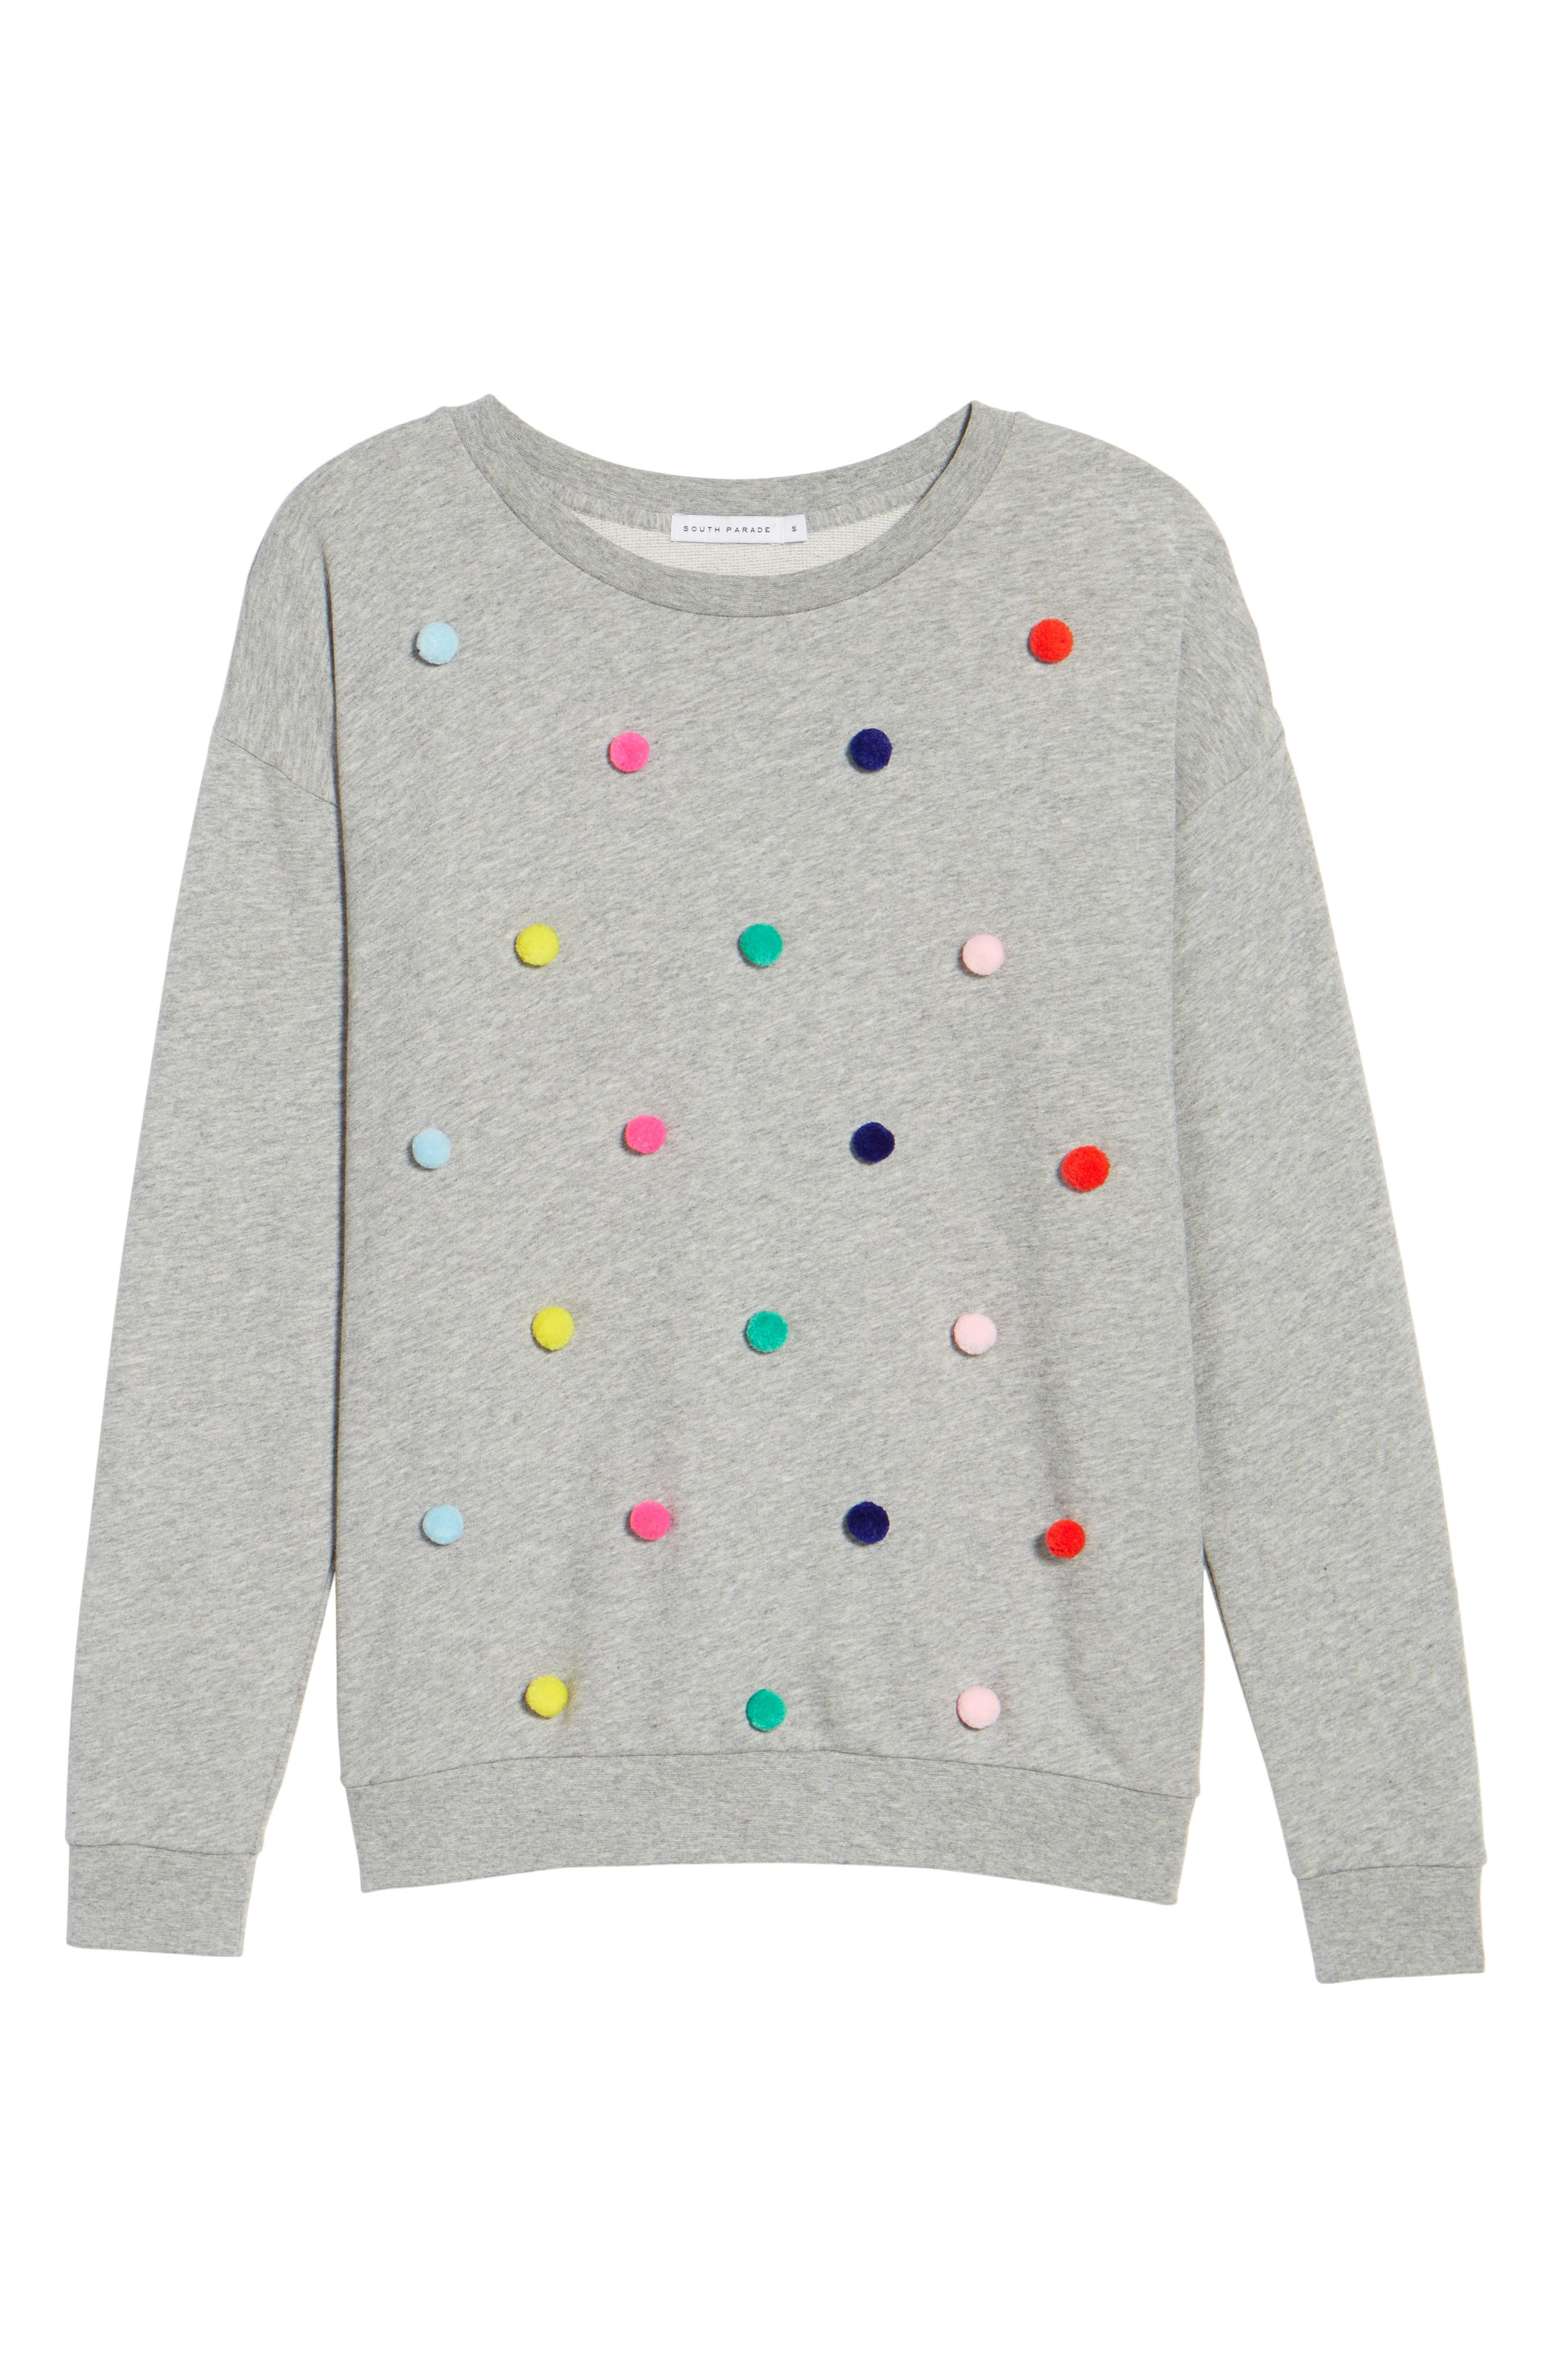 Pompom Sweatshirt,                             Alternate thumbnail 6, color,                             020